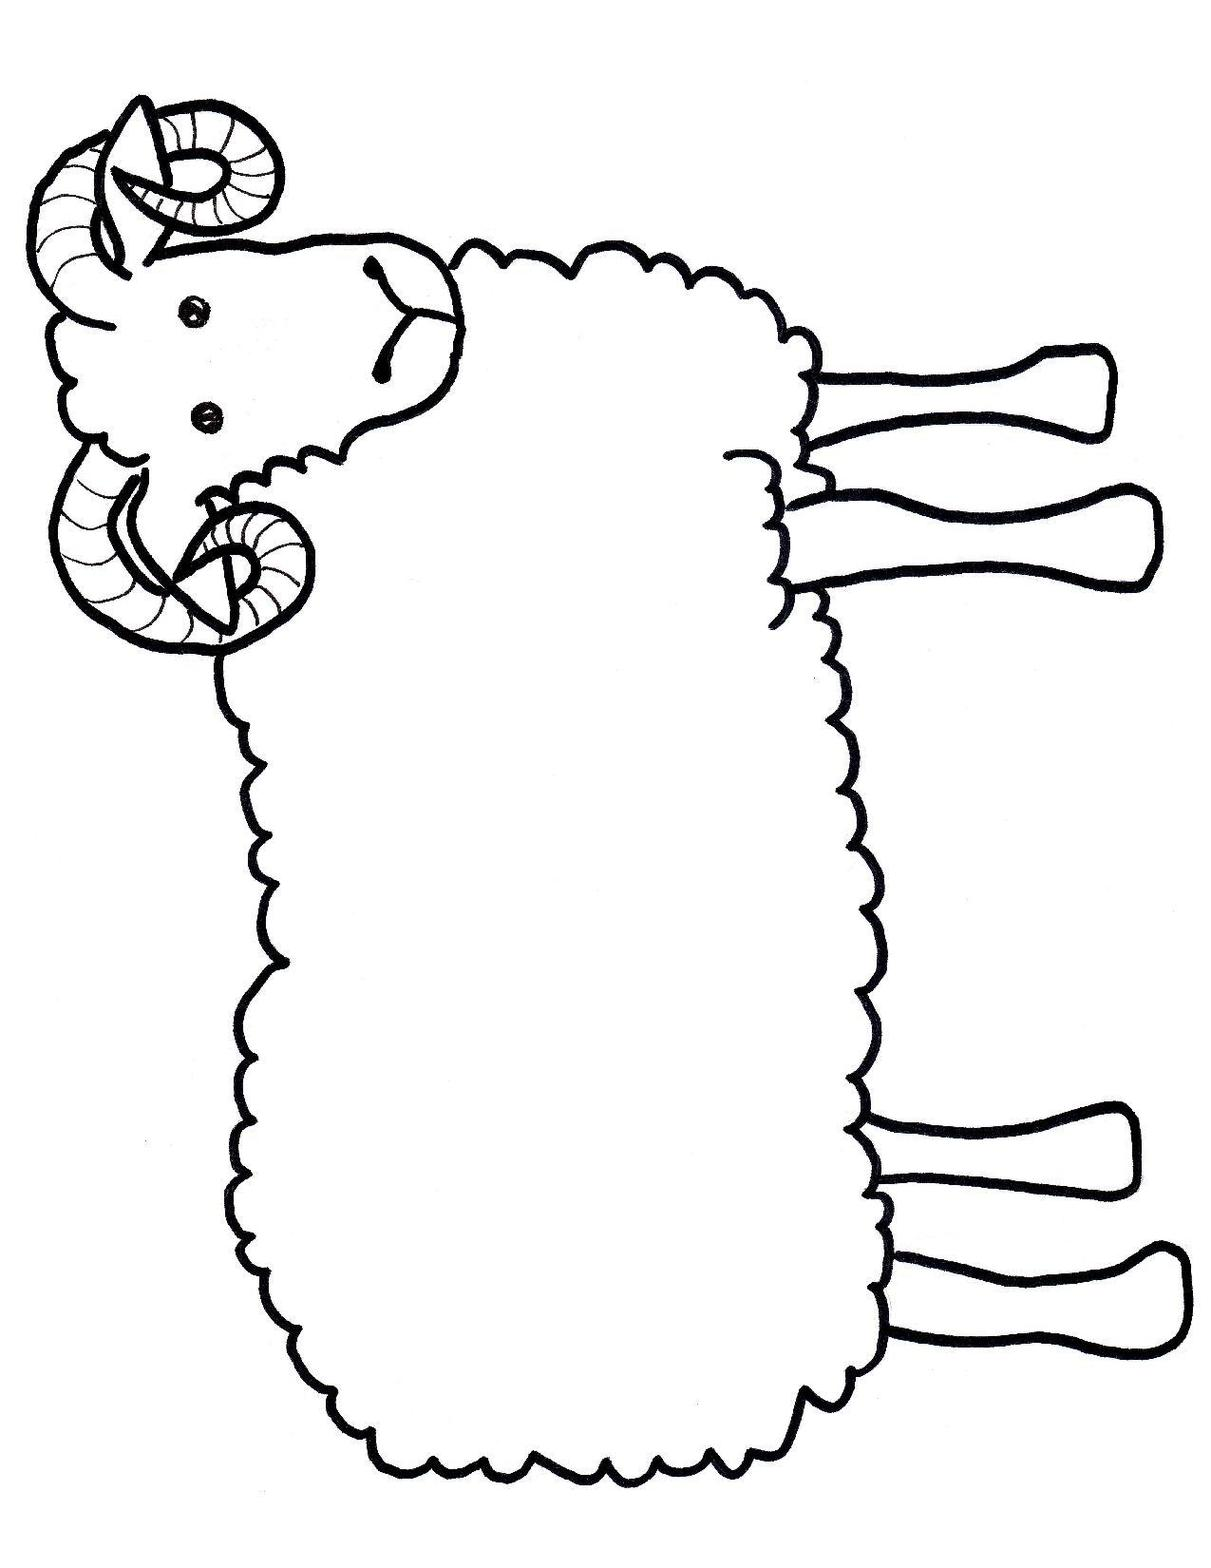 Ram clipart black and white image stock Free White Ram Cliparts, Download Free Clip Art, Free Clip ... image stock